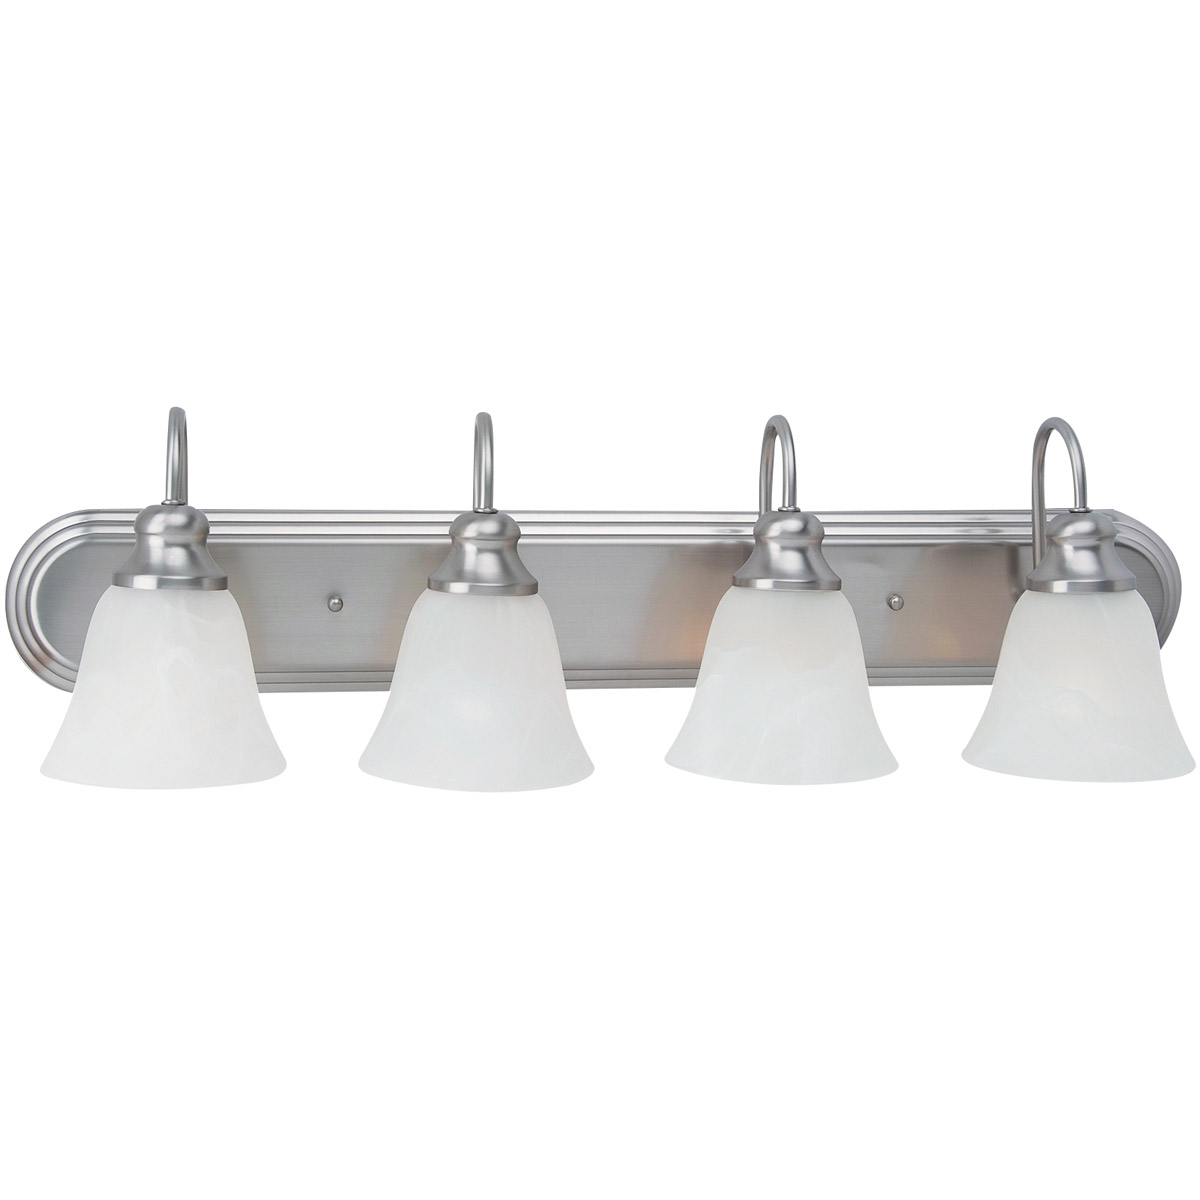 Sea Gull Lighting Windgate 4 Light Bath Vanity in Brushed Nickel 44942-962